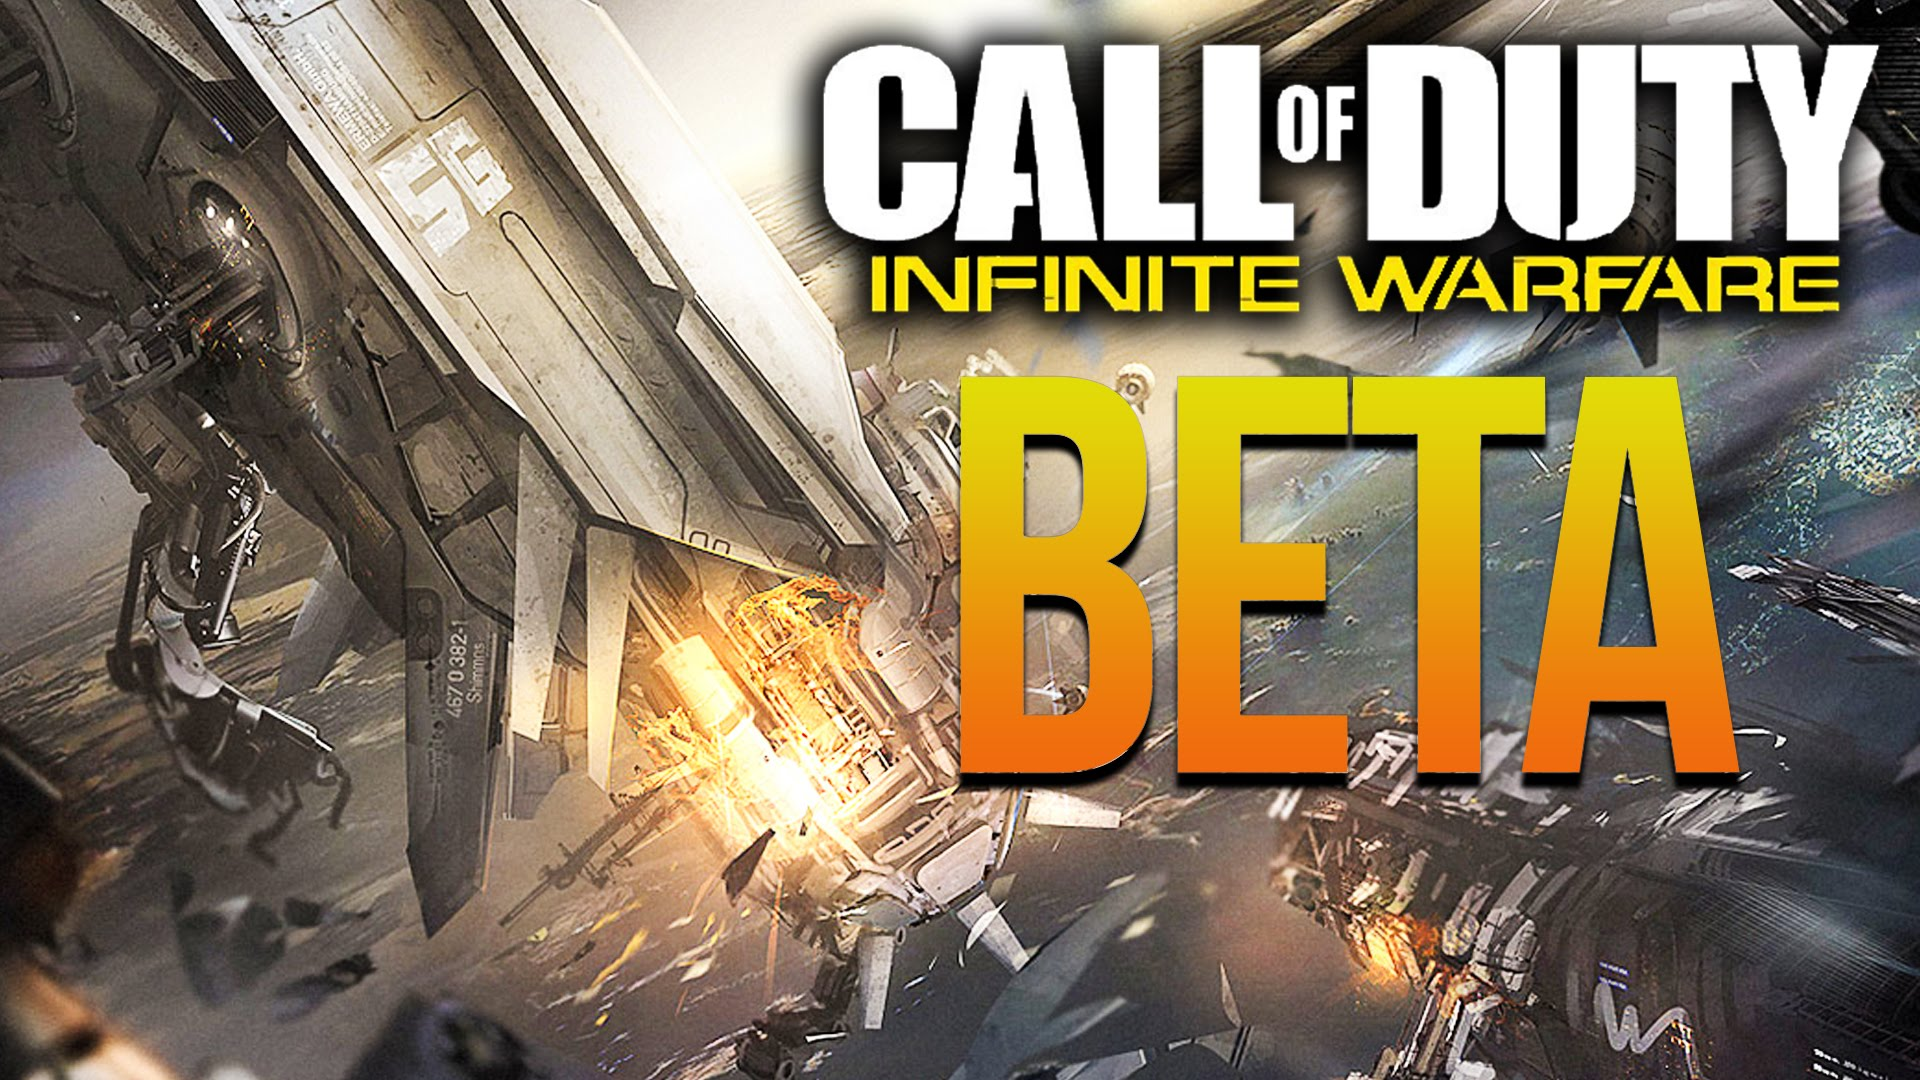 Call Of Duty Infinite Warfare Multiplayer Beta Trailer Nothing Game Ps4 Gaming Video Games